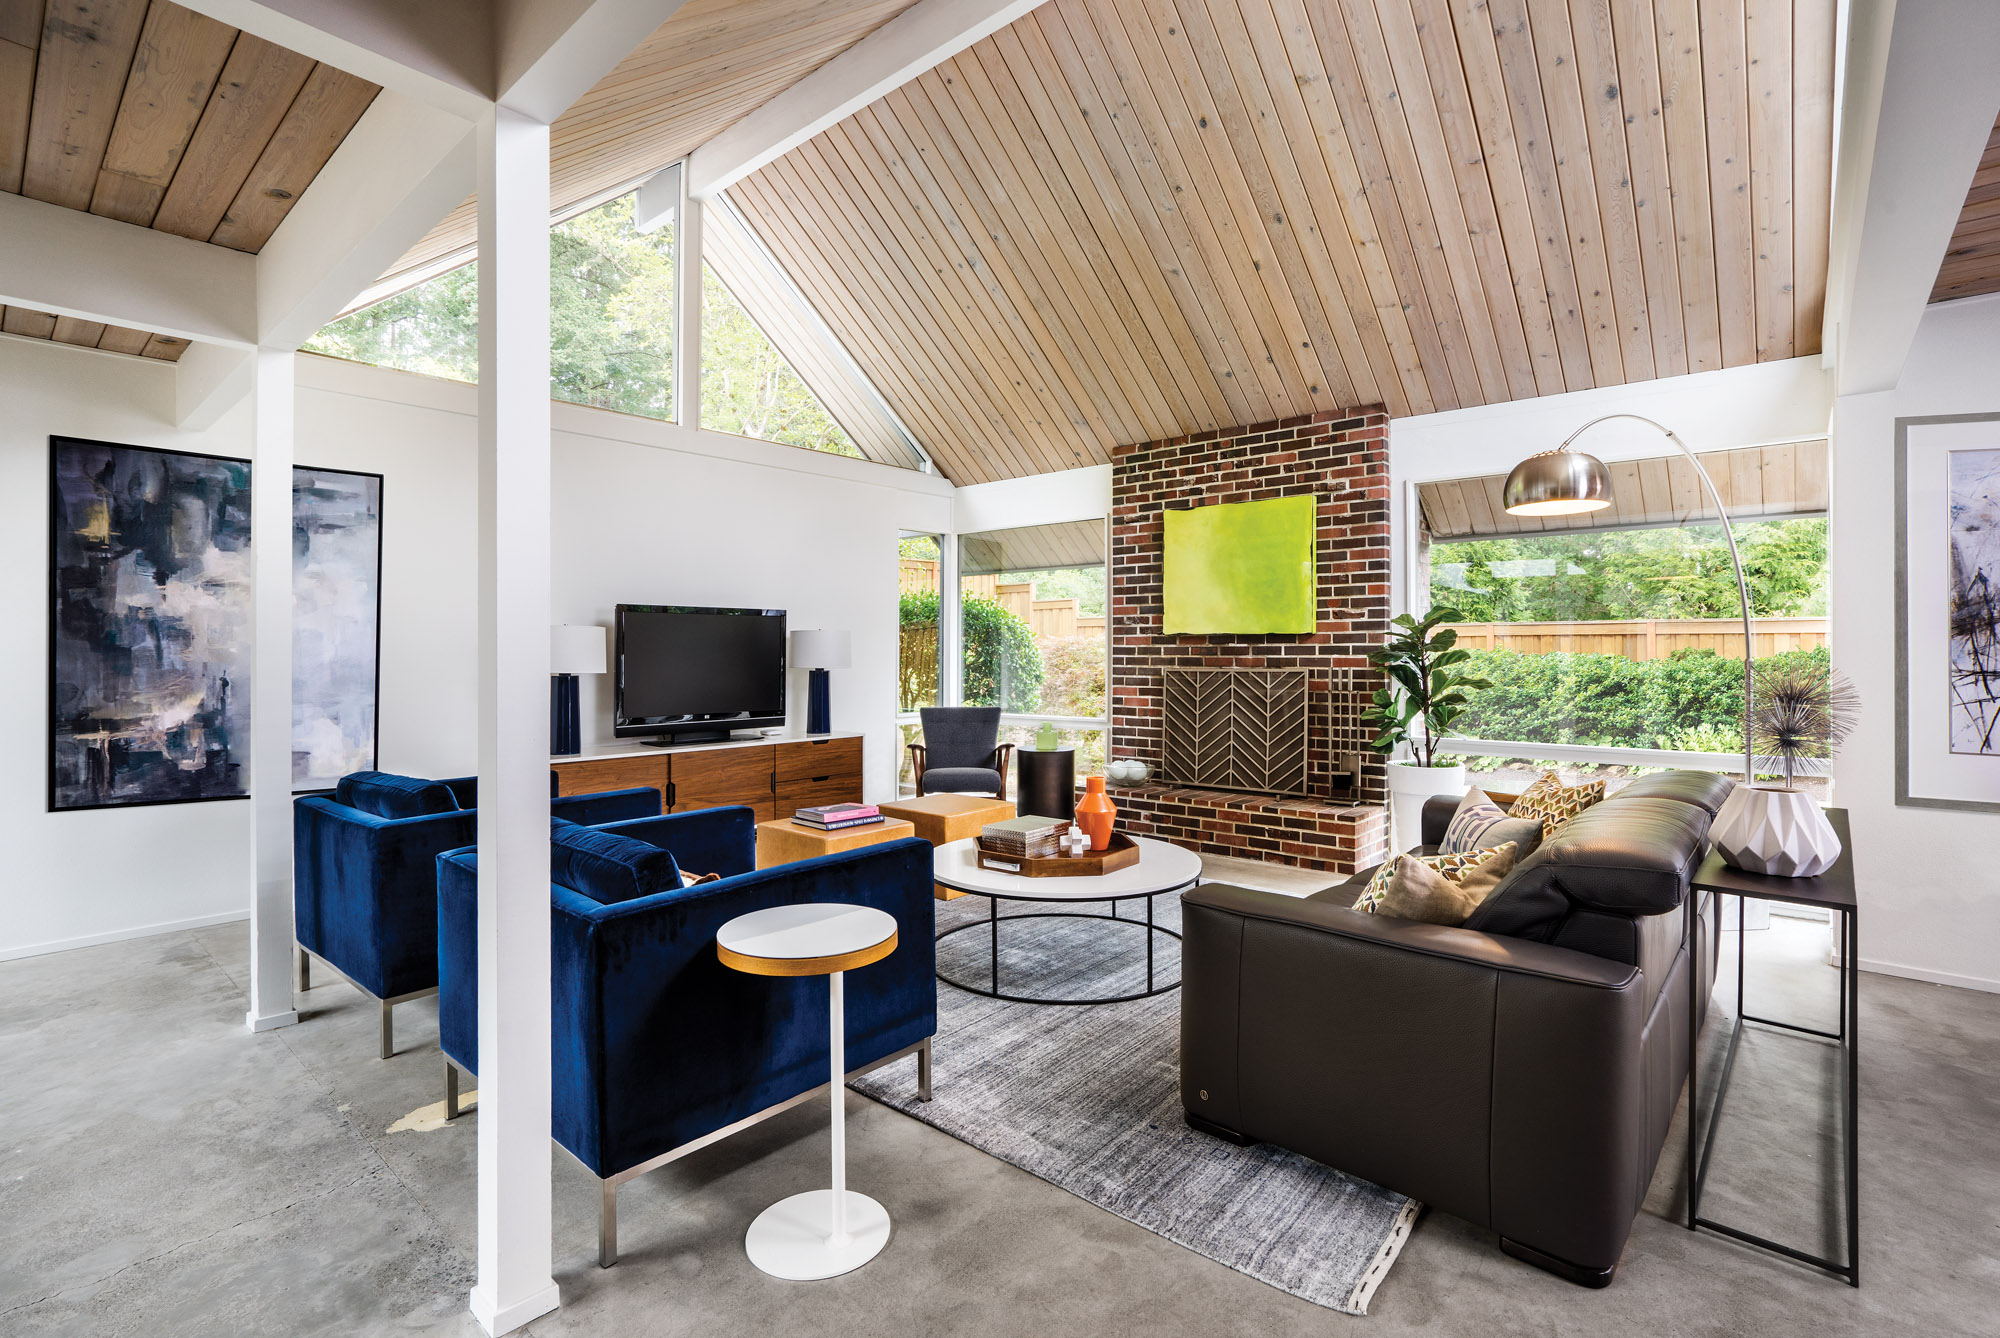 Rummer designed living room